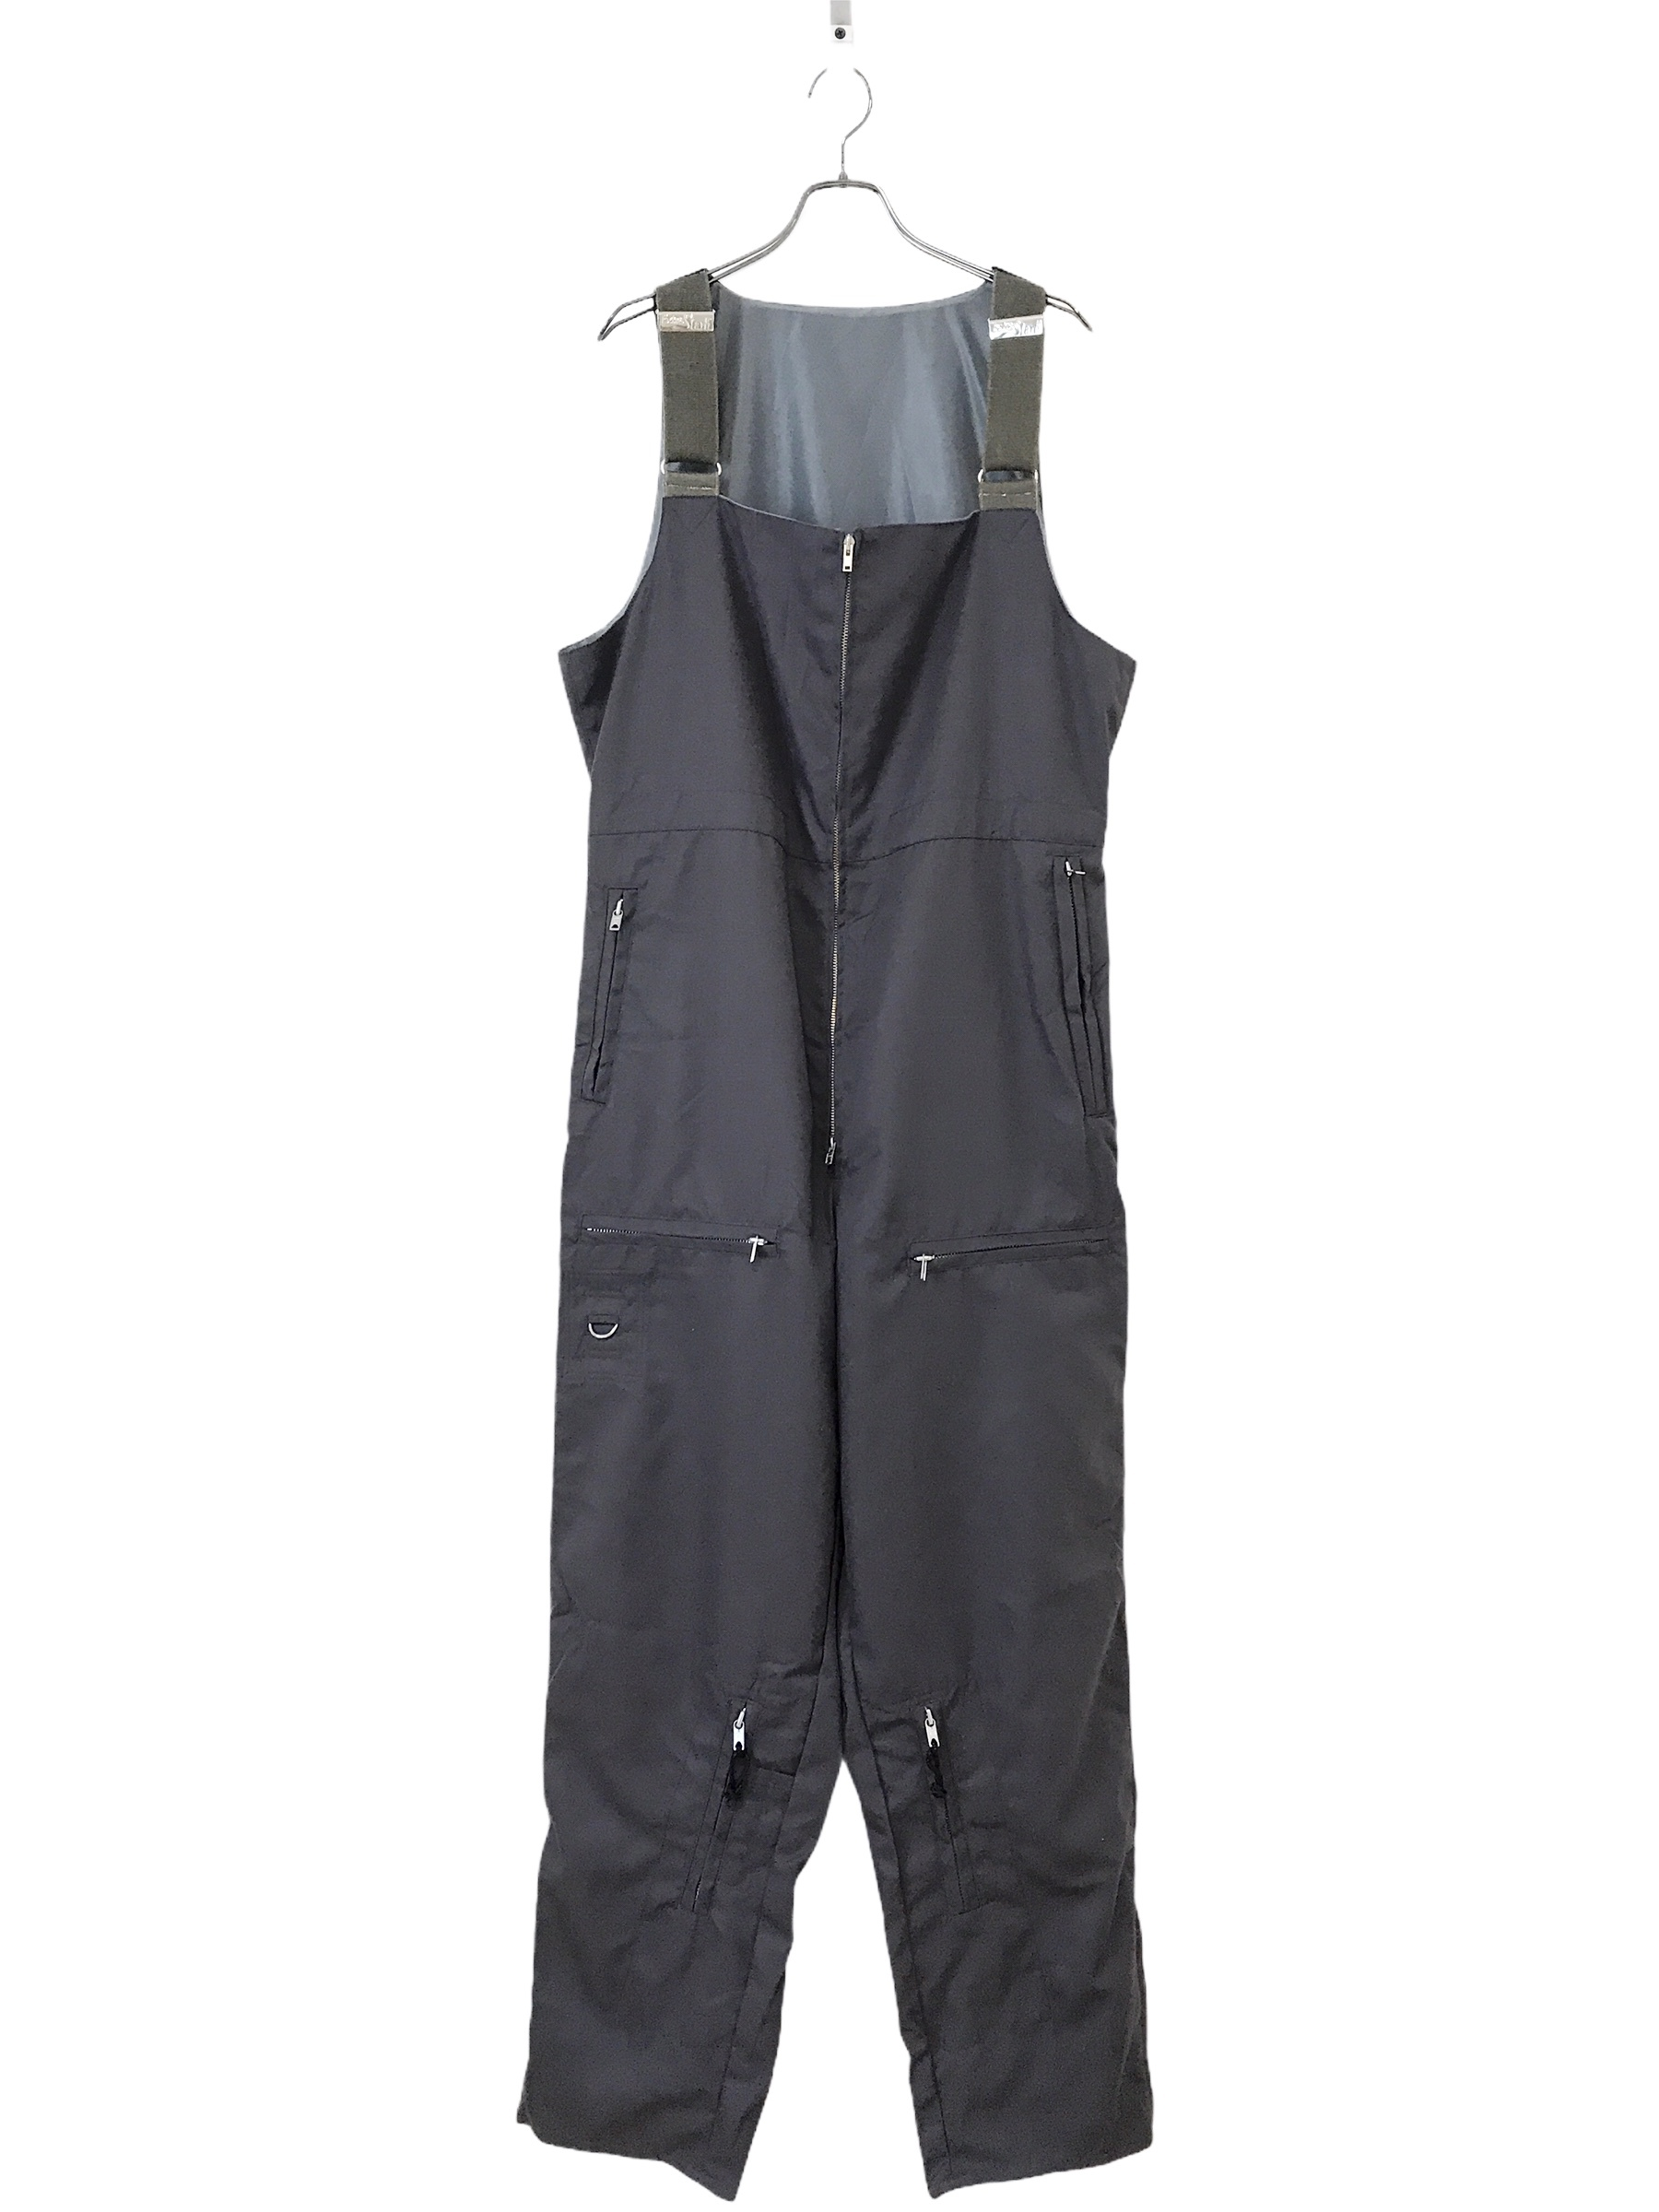 Dead Stock 60's East German Army Flight Overalls sg52